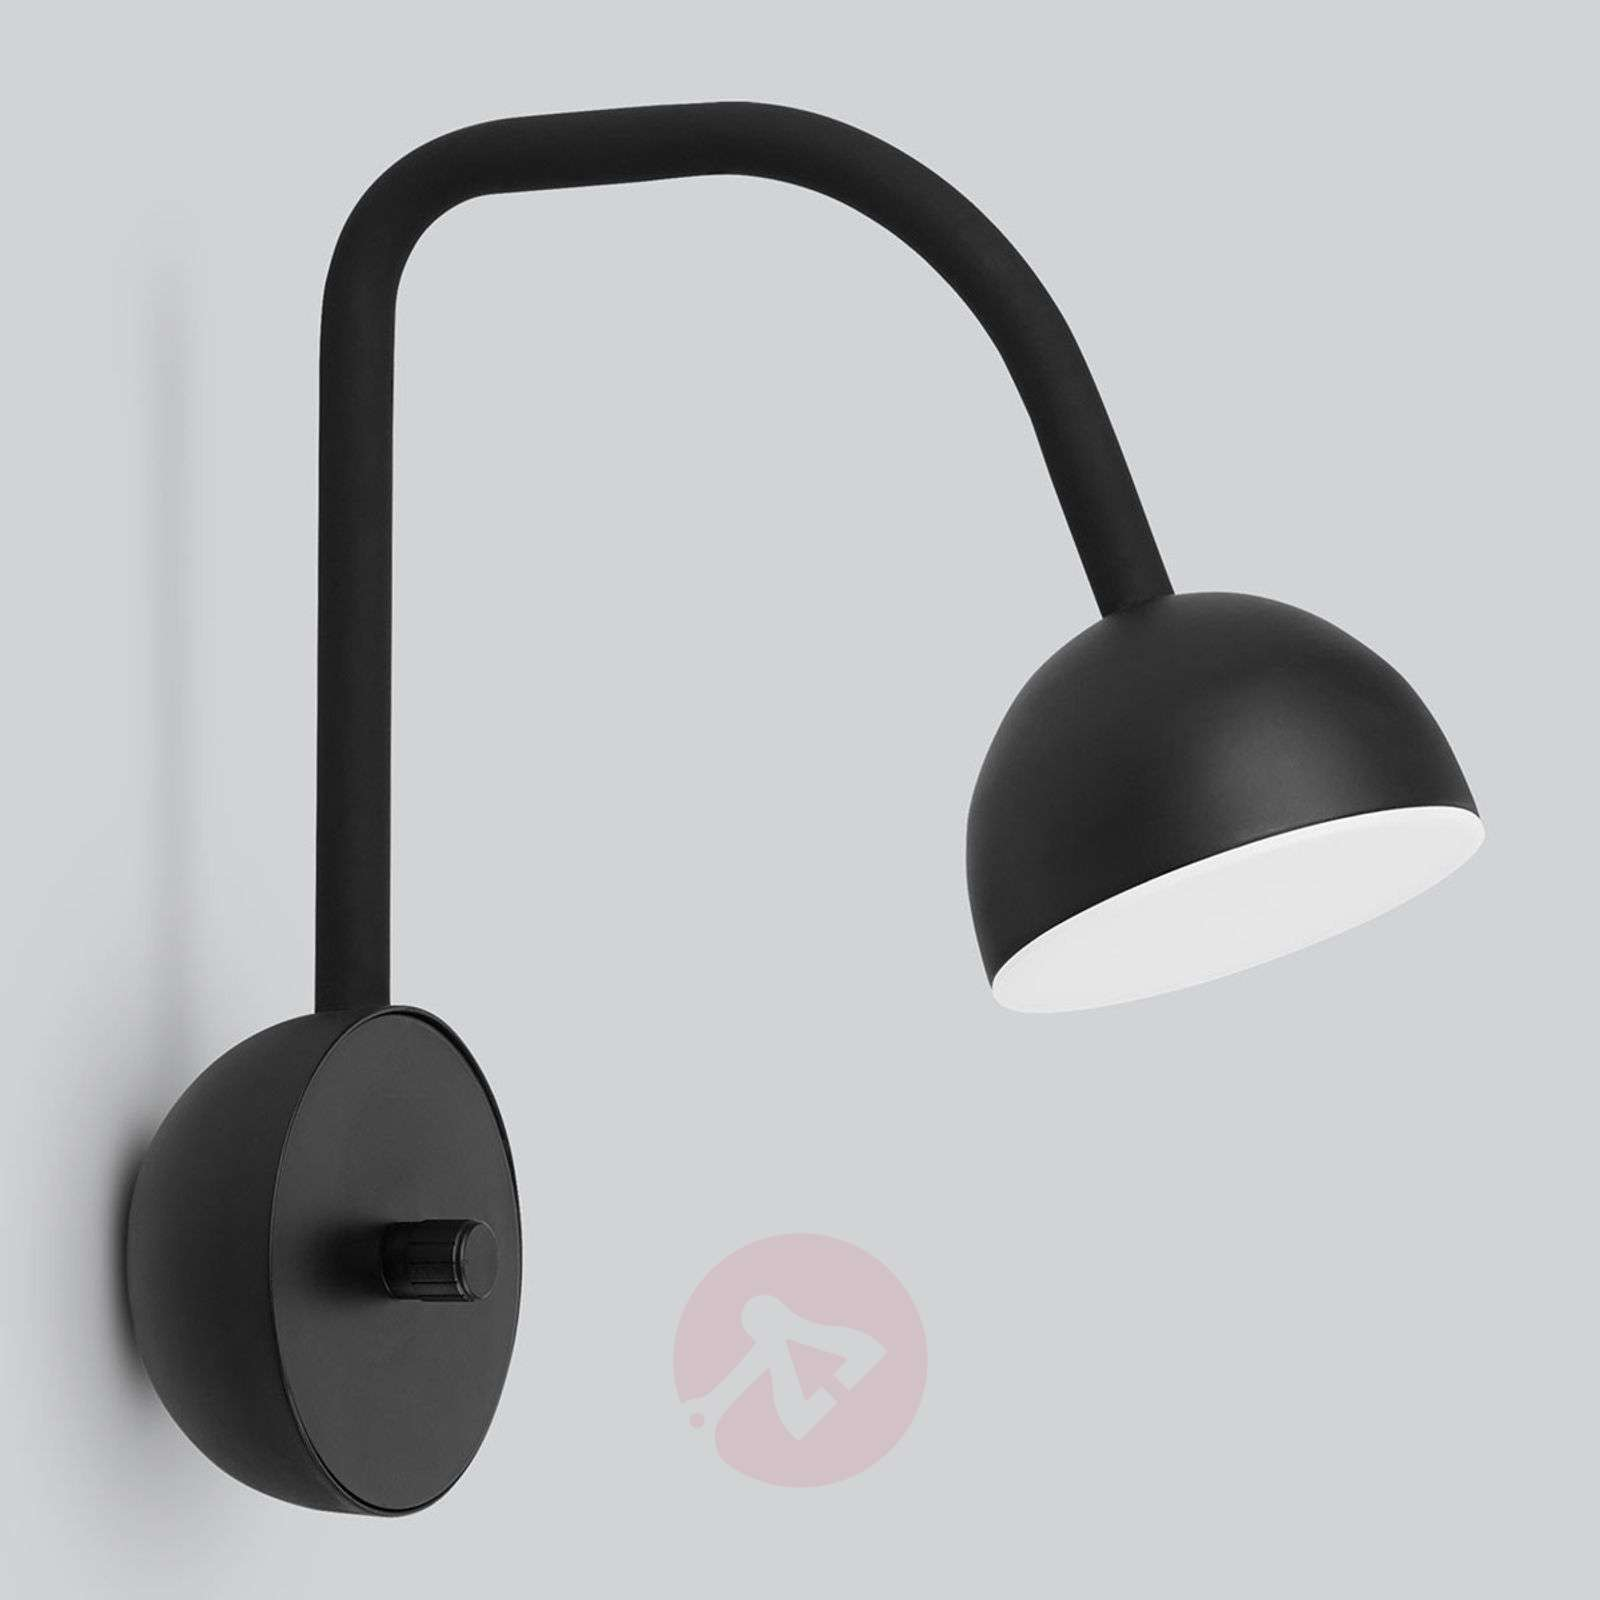 Acquista northern blush applique a led con spina lampade